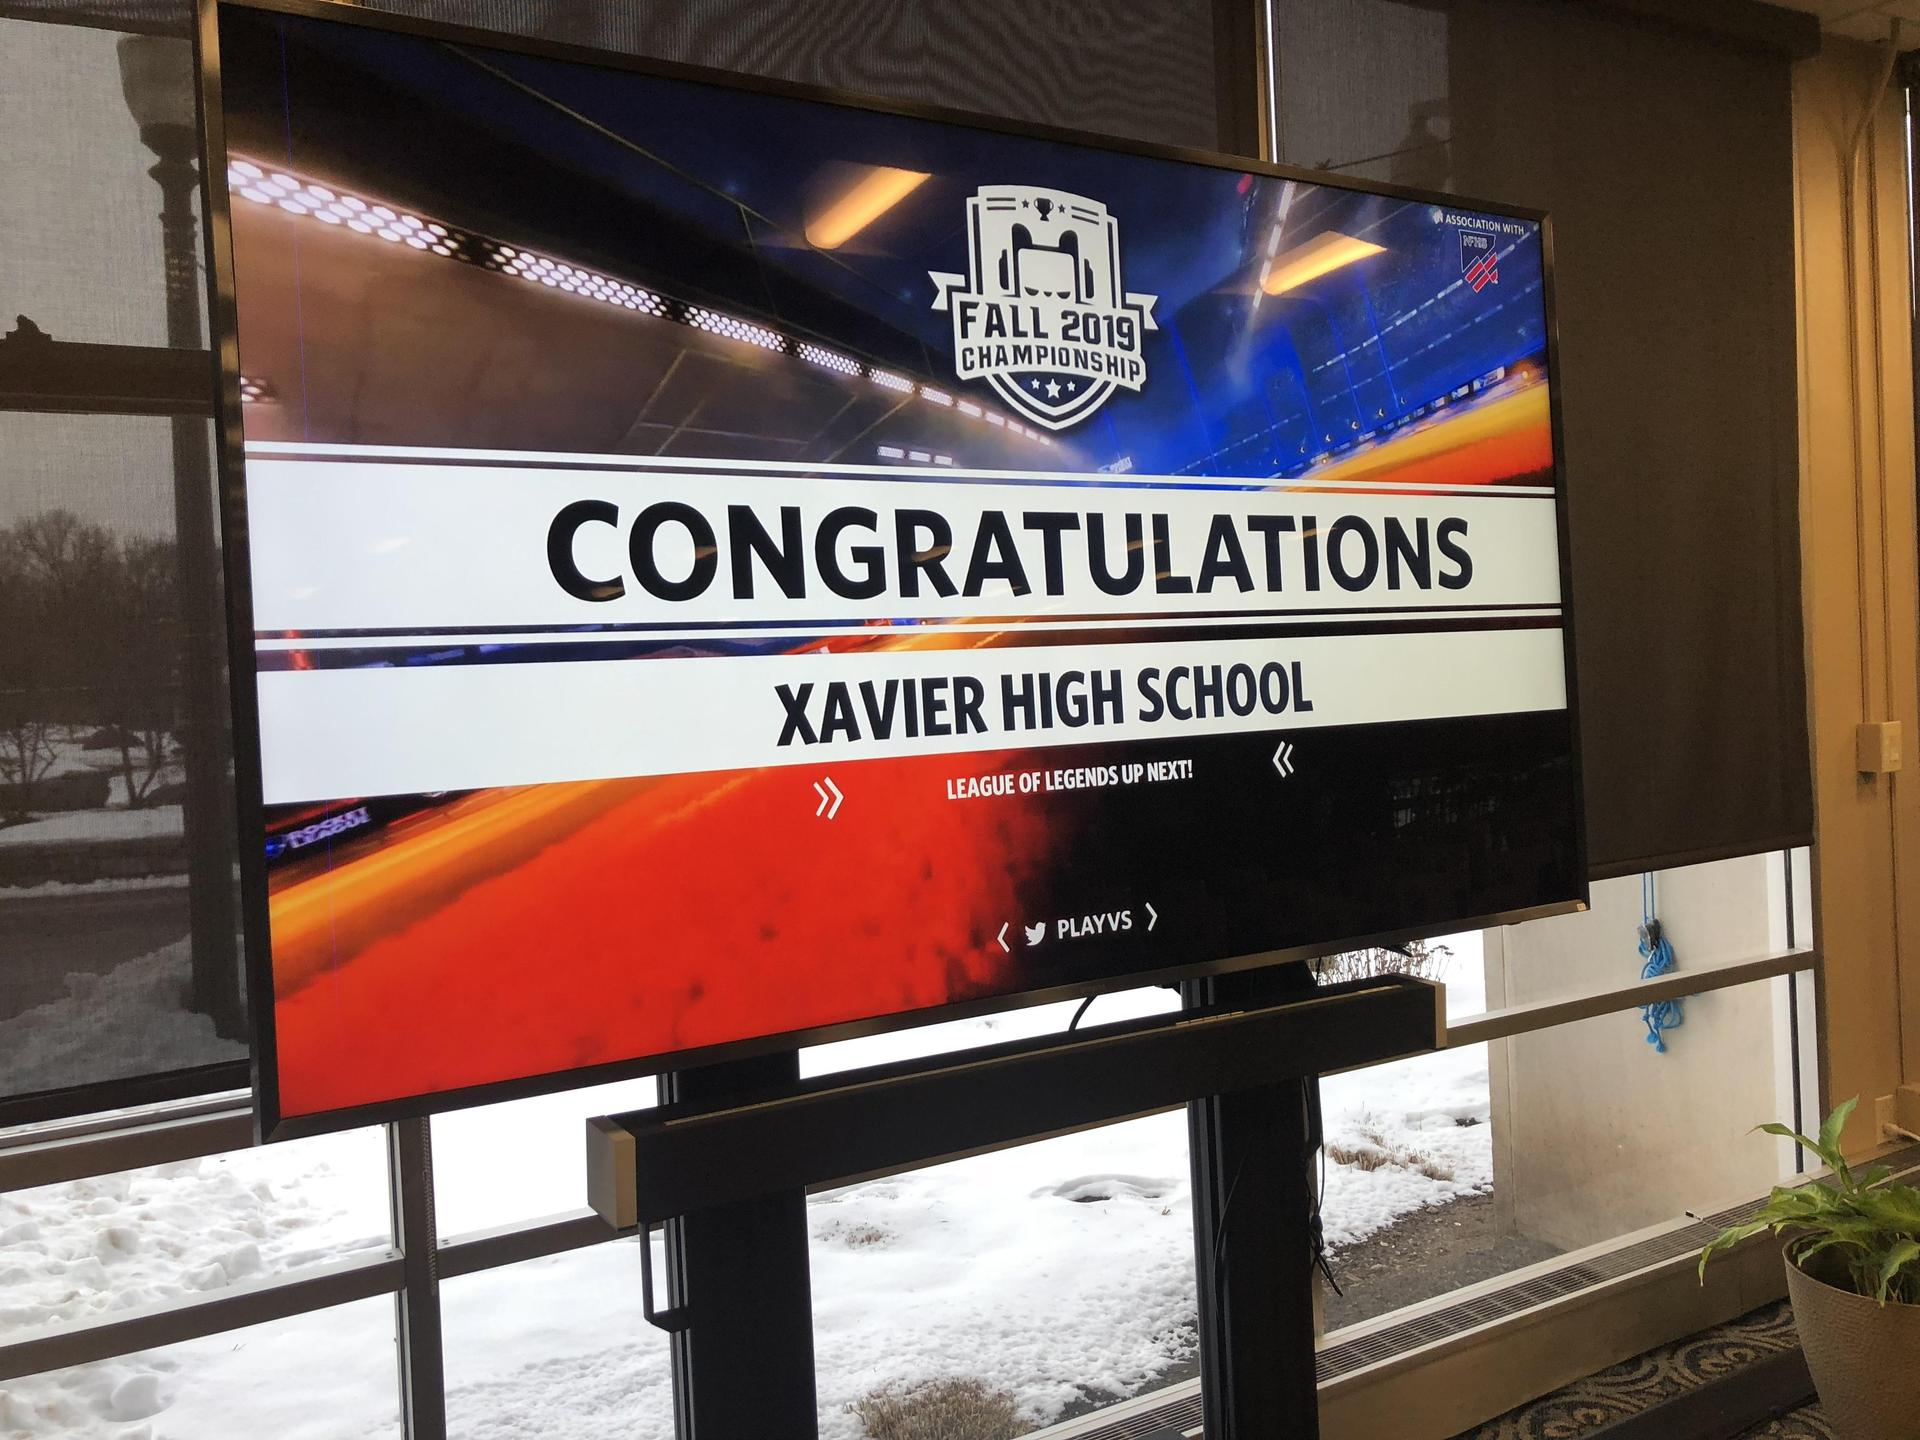 avier High School's Rocket League champions for 2019-2020 season.